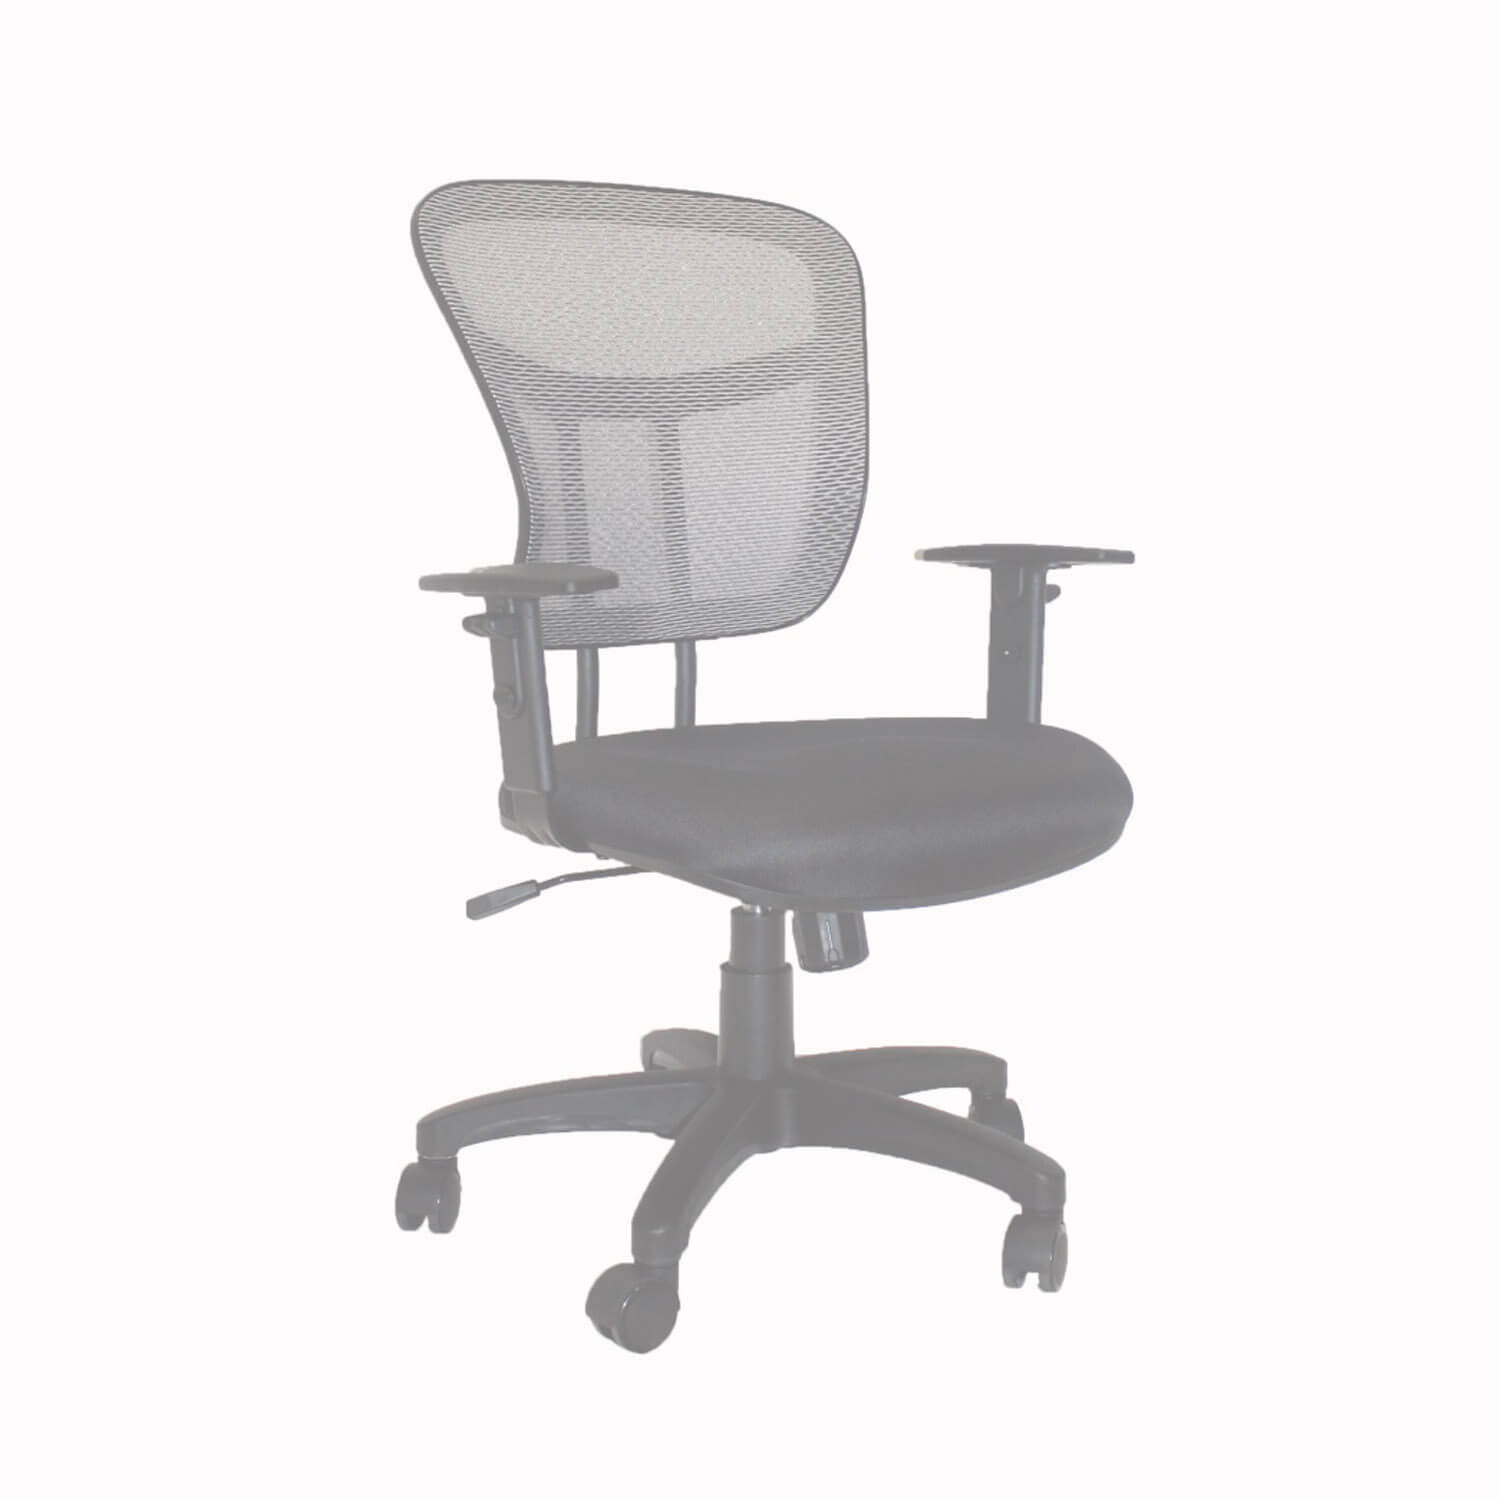 used office chairs - second hand office chairs - used office furniture